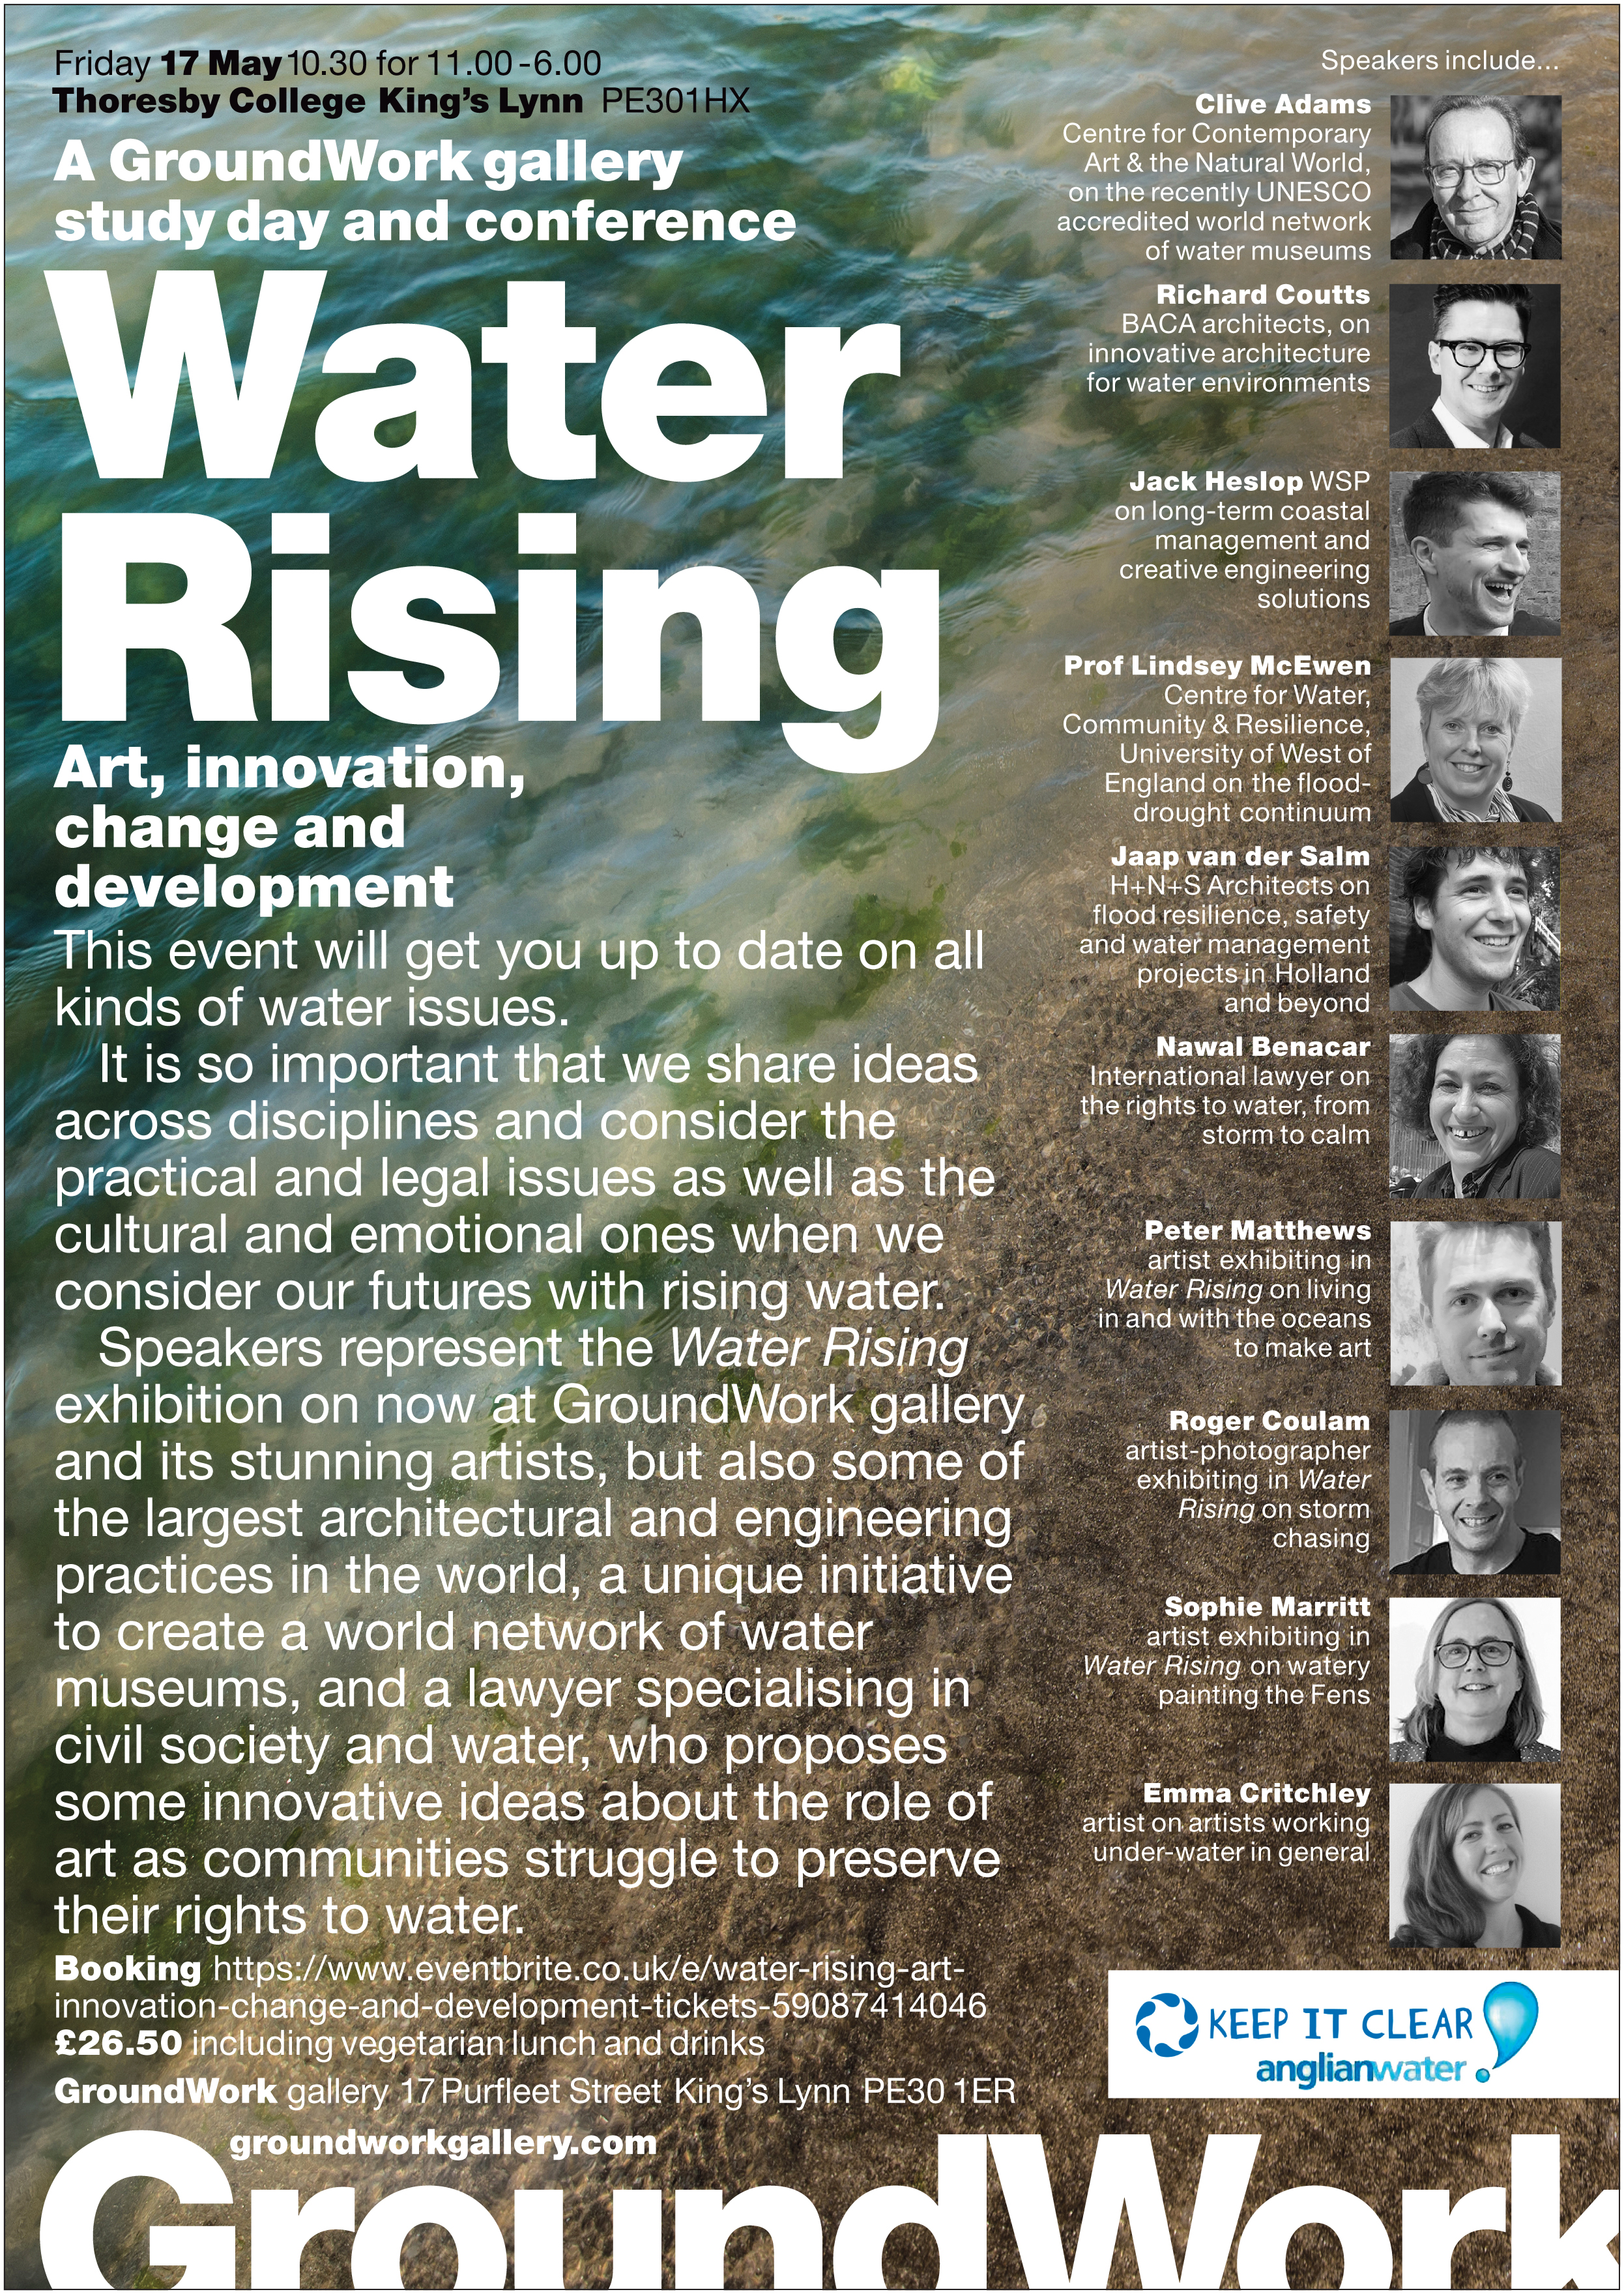 Water Rising event flyer-1 copy.jpg